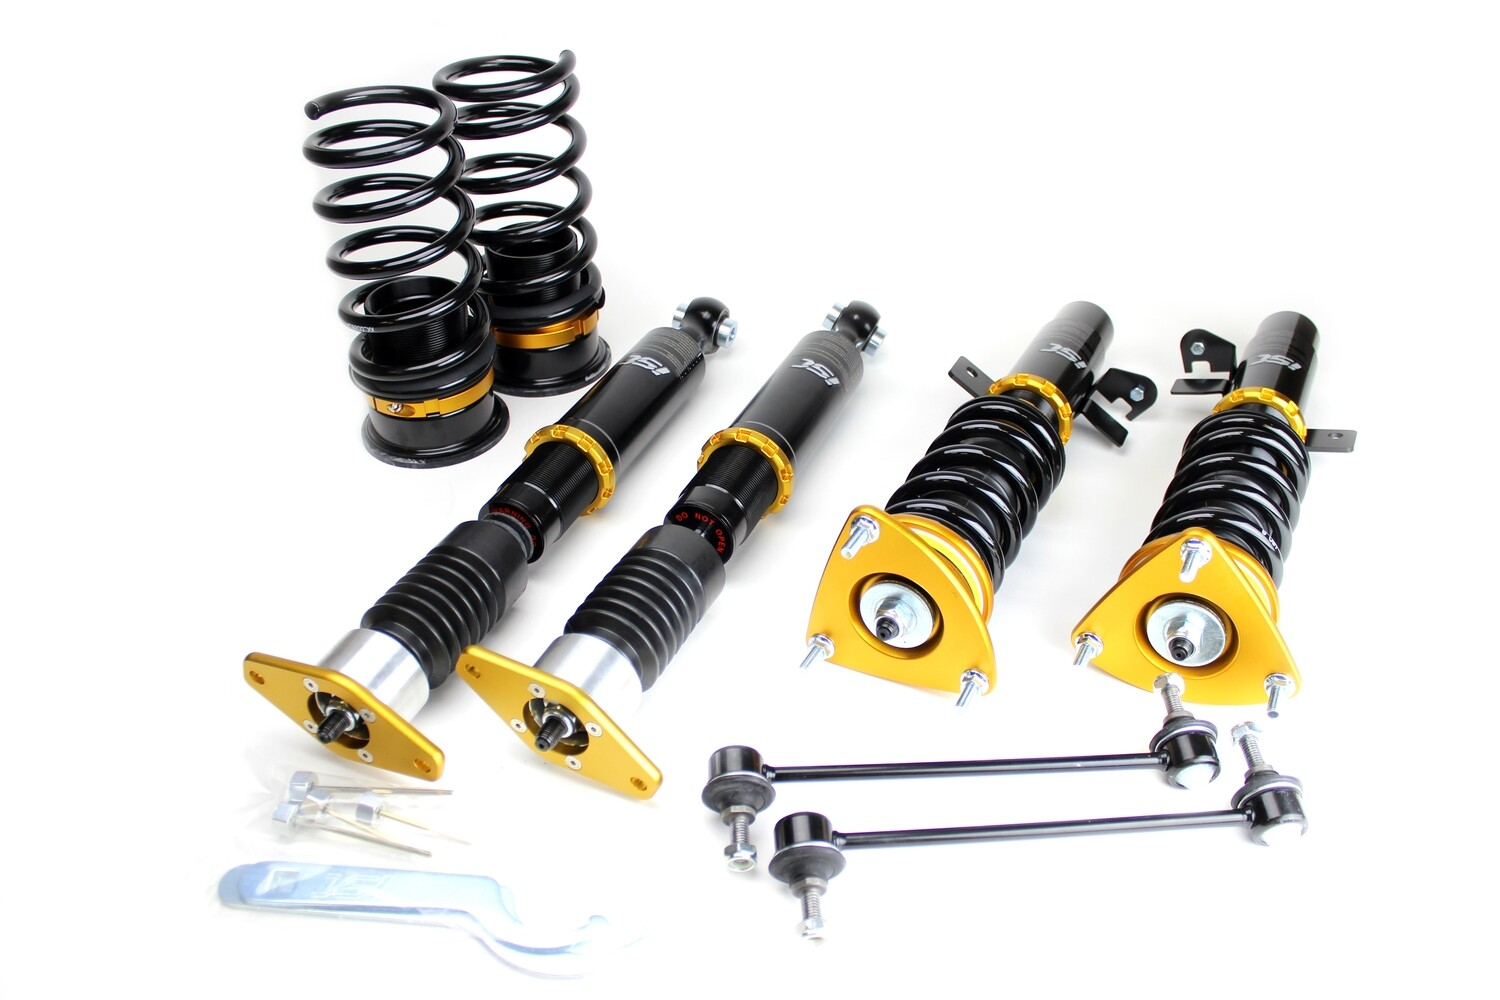 Ford Mustang S550 Chassis 2015+ ISC Basic Coilover Suspension